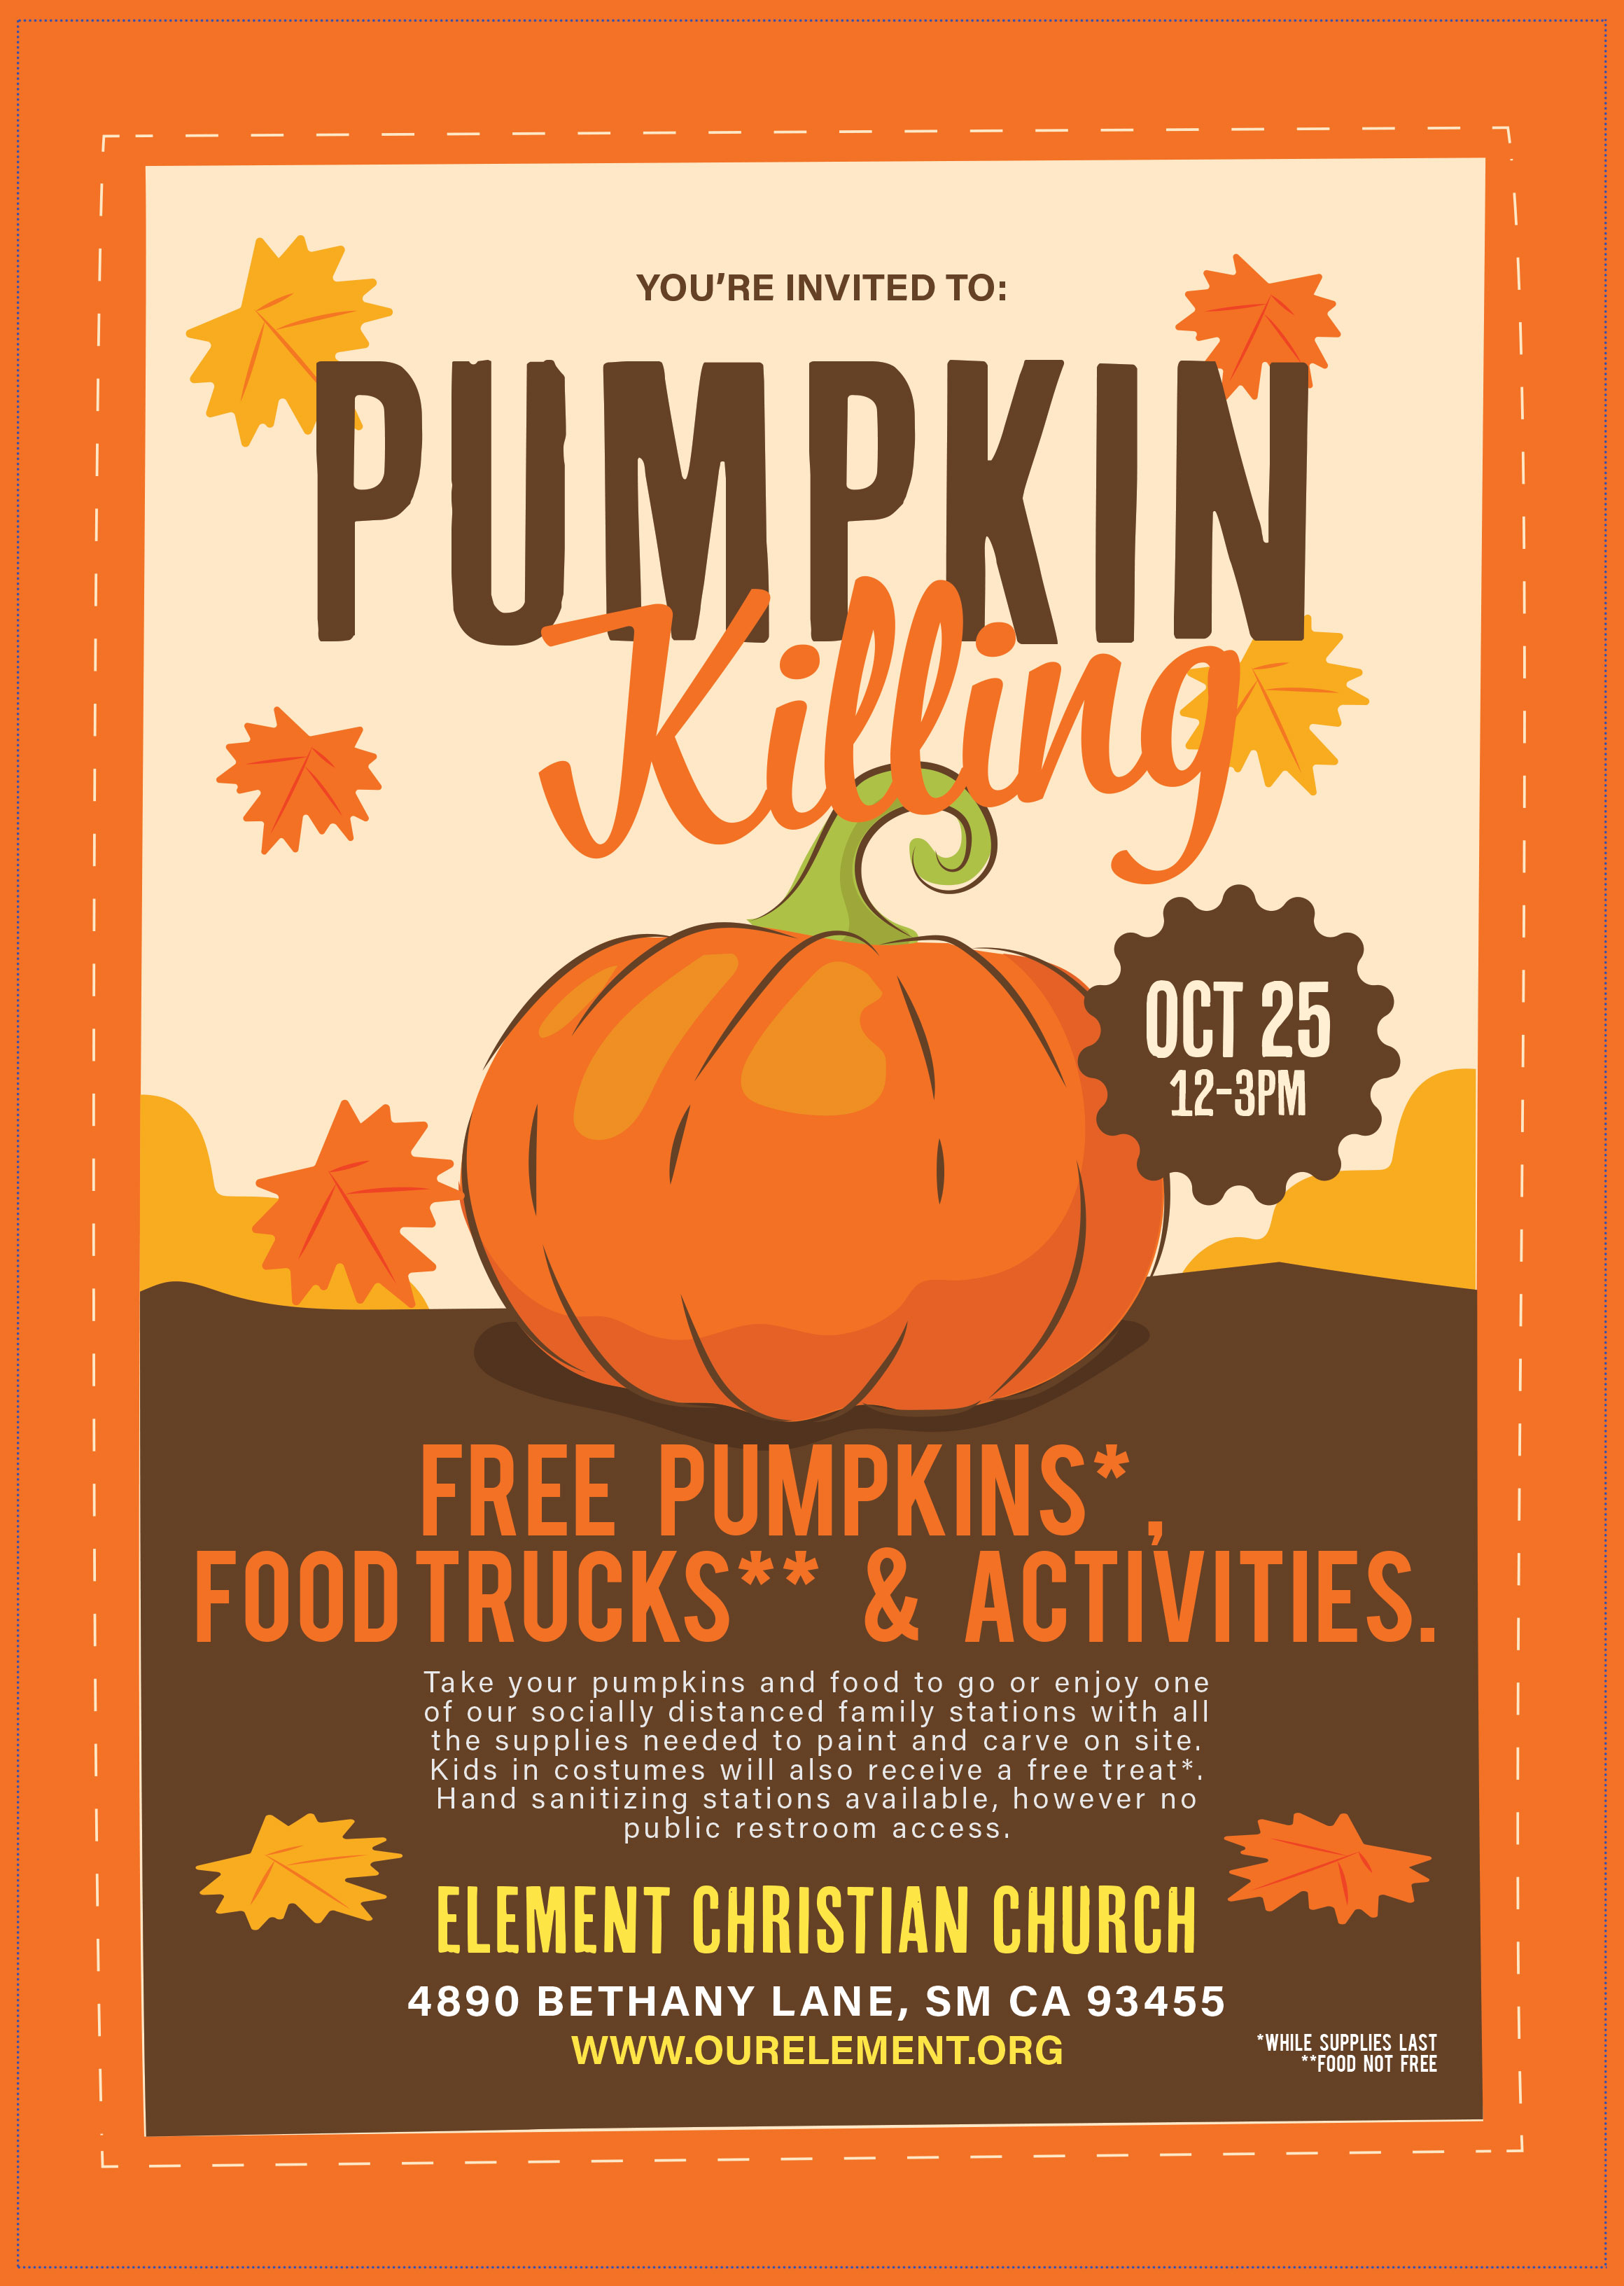 You're invited to Element's Pumpkin Killing October 25th from 12-3pm at Element, 4890 Bethany Lane.